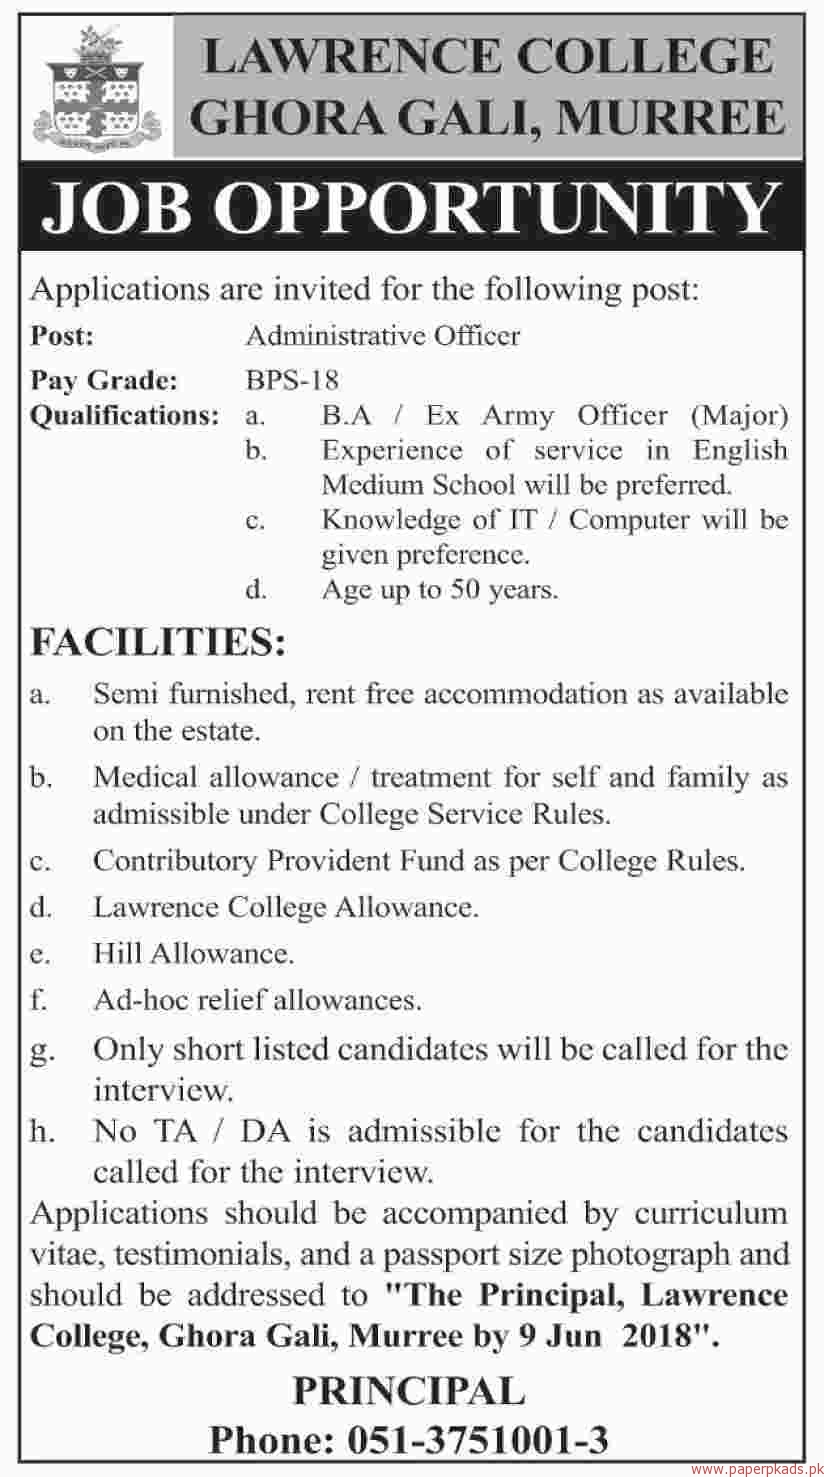 Lawrence College Ghora Gali Murree Jobs 2018 Latest